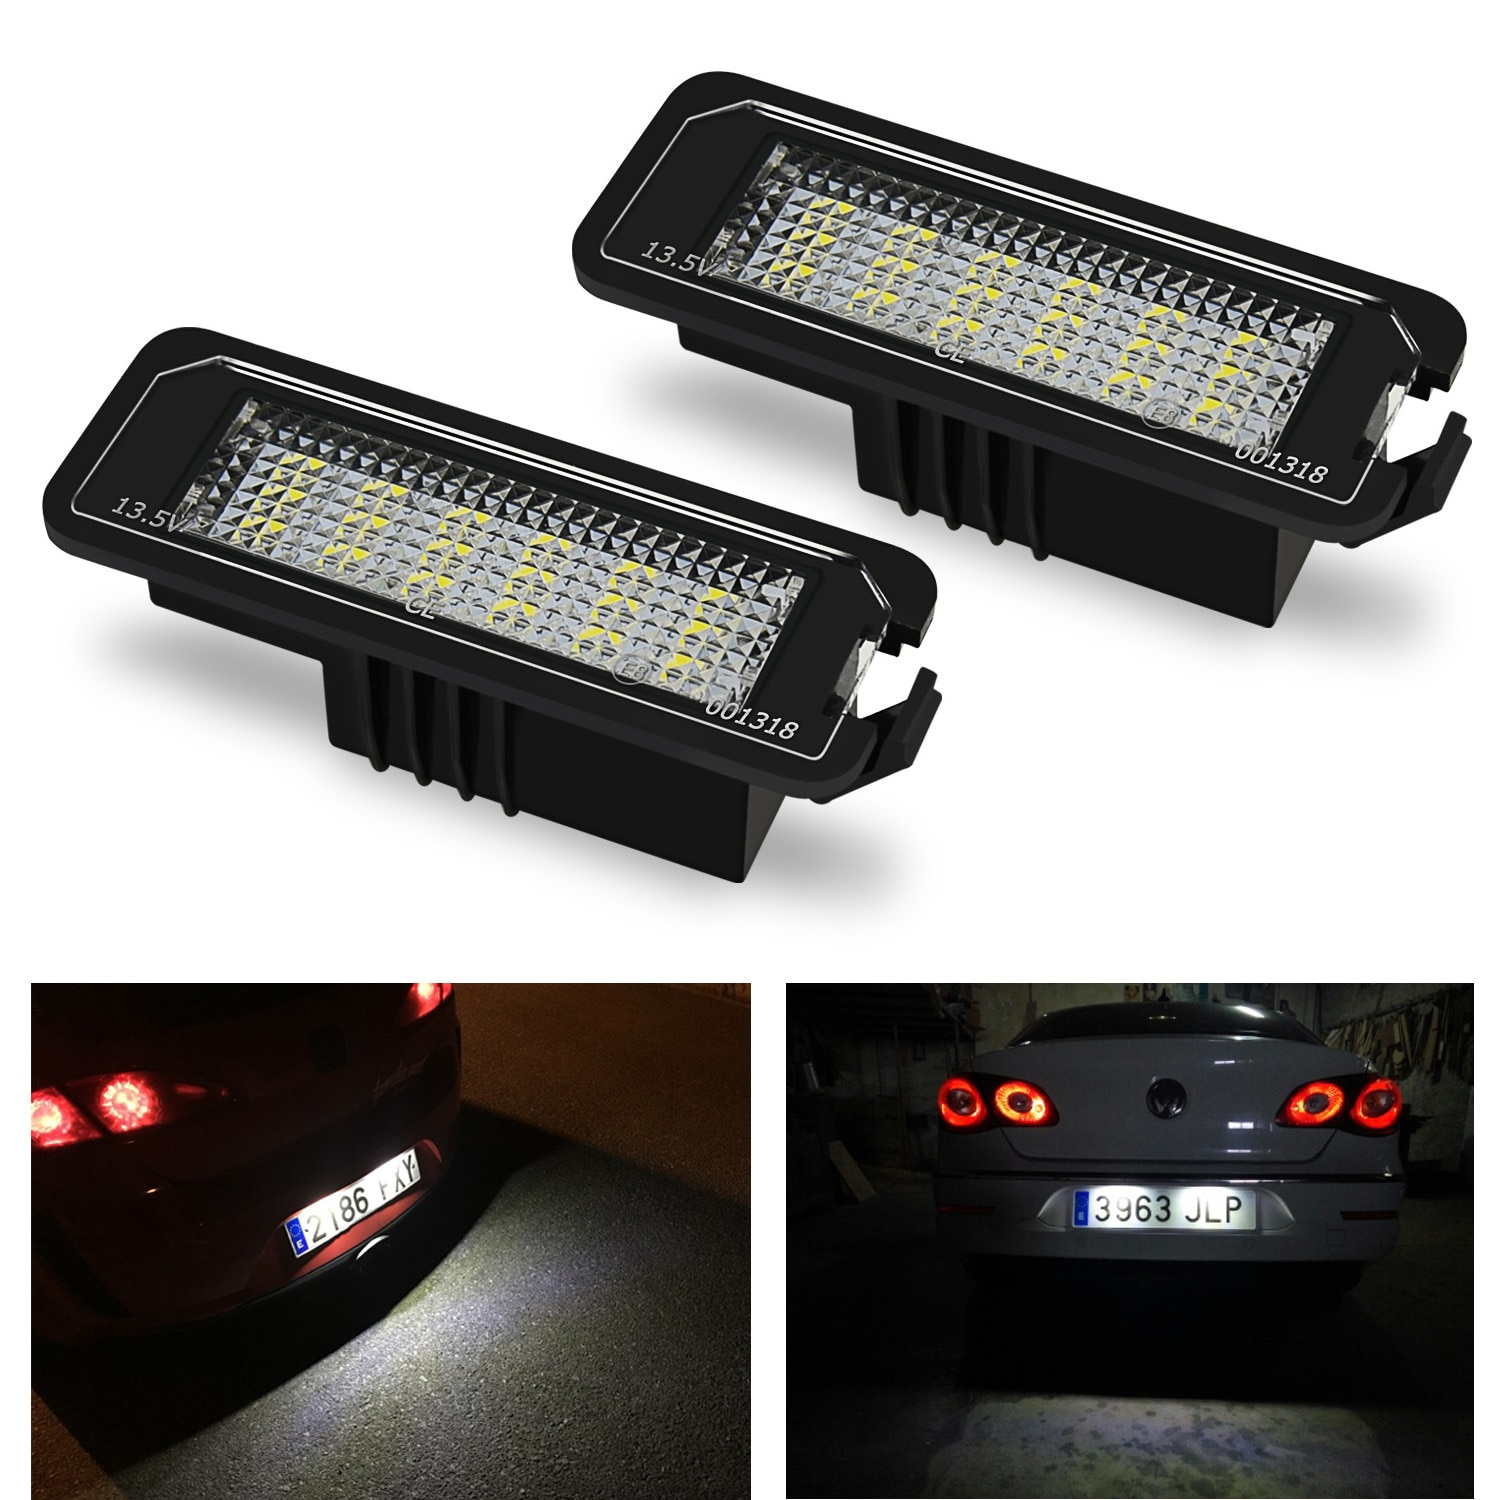 2x Number License Plate Light Lamp No Error 18SMD LED 12V 6500k White for VW Golf MK4 MK5 MK6 Passat